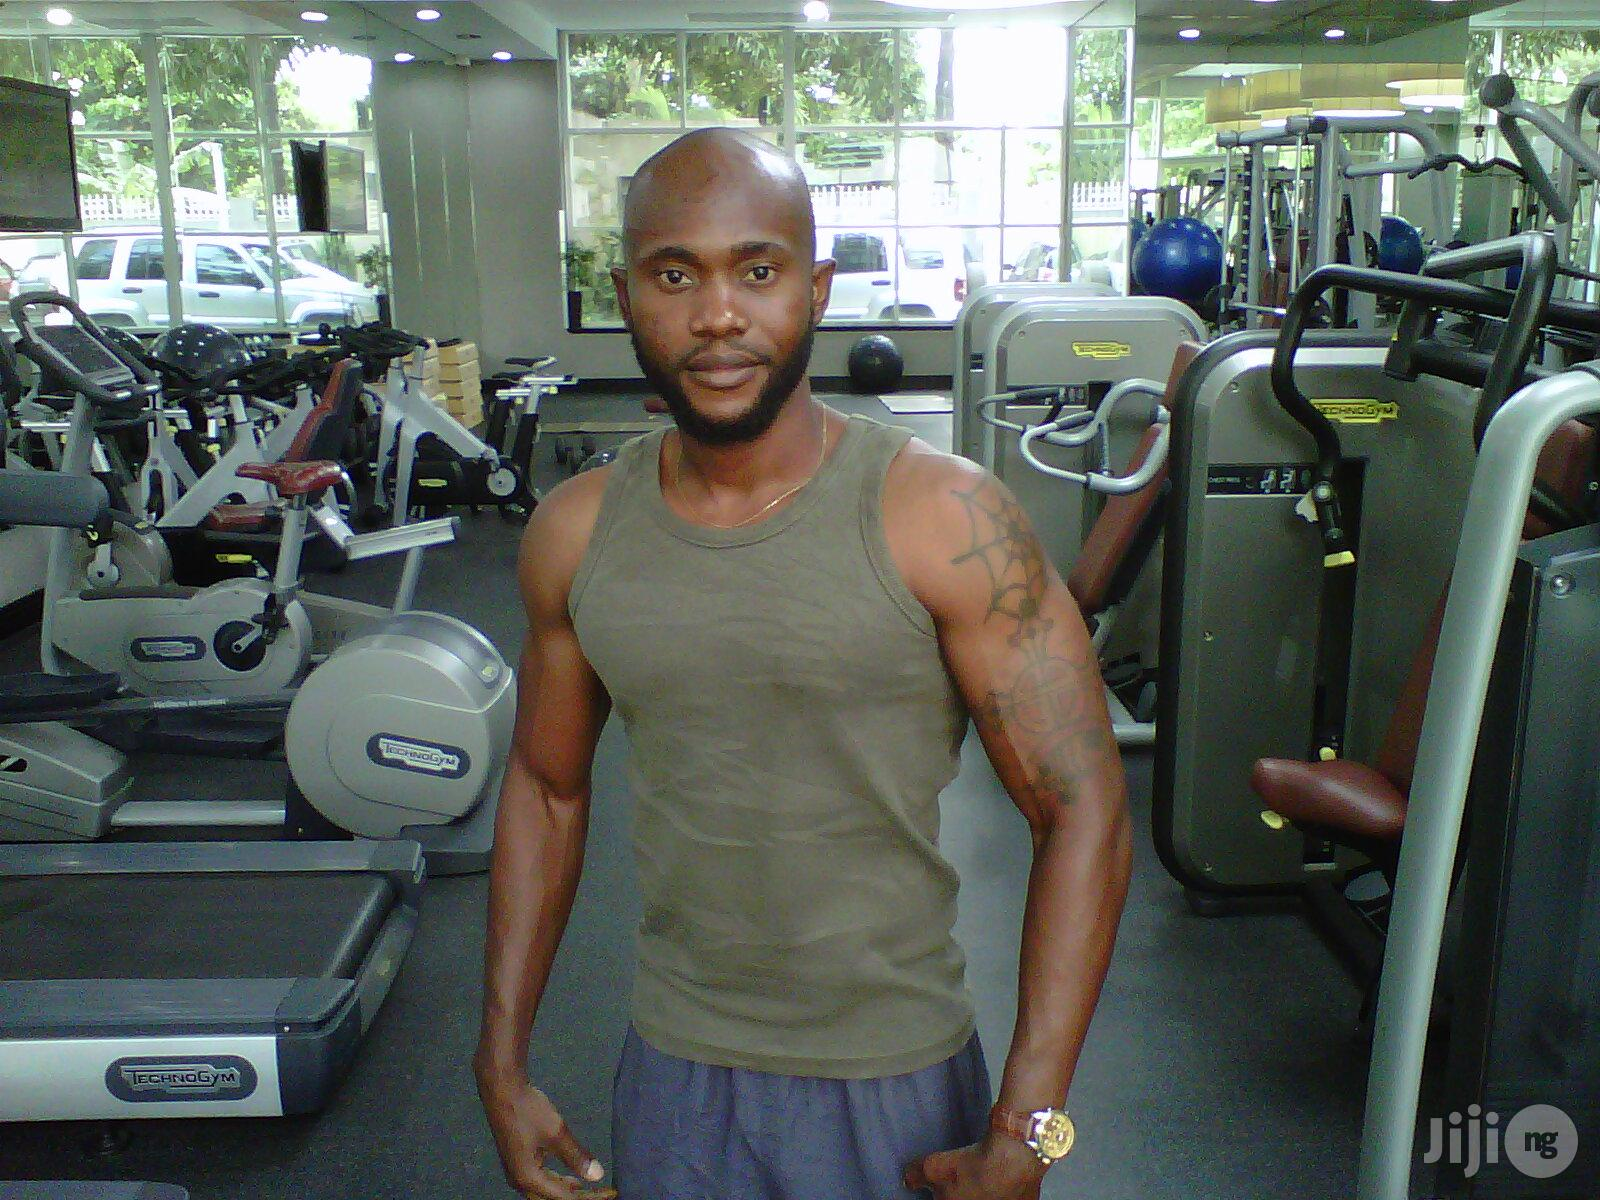 Certified Personal Trainer(CPT)/Aerobics Instructor/Gym Instructor   Fitness & Personal Training Services for sale in Ikoyi, Lagos State, Nigeria